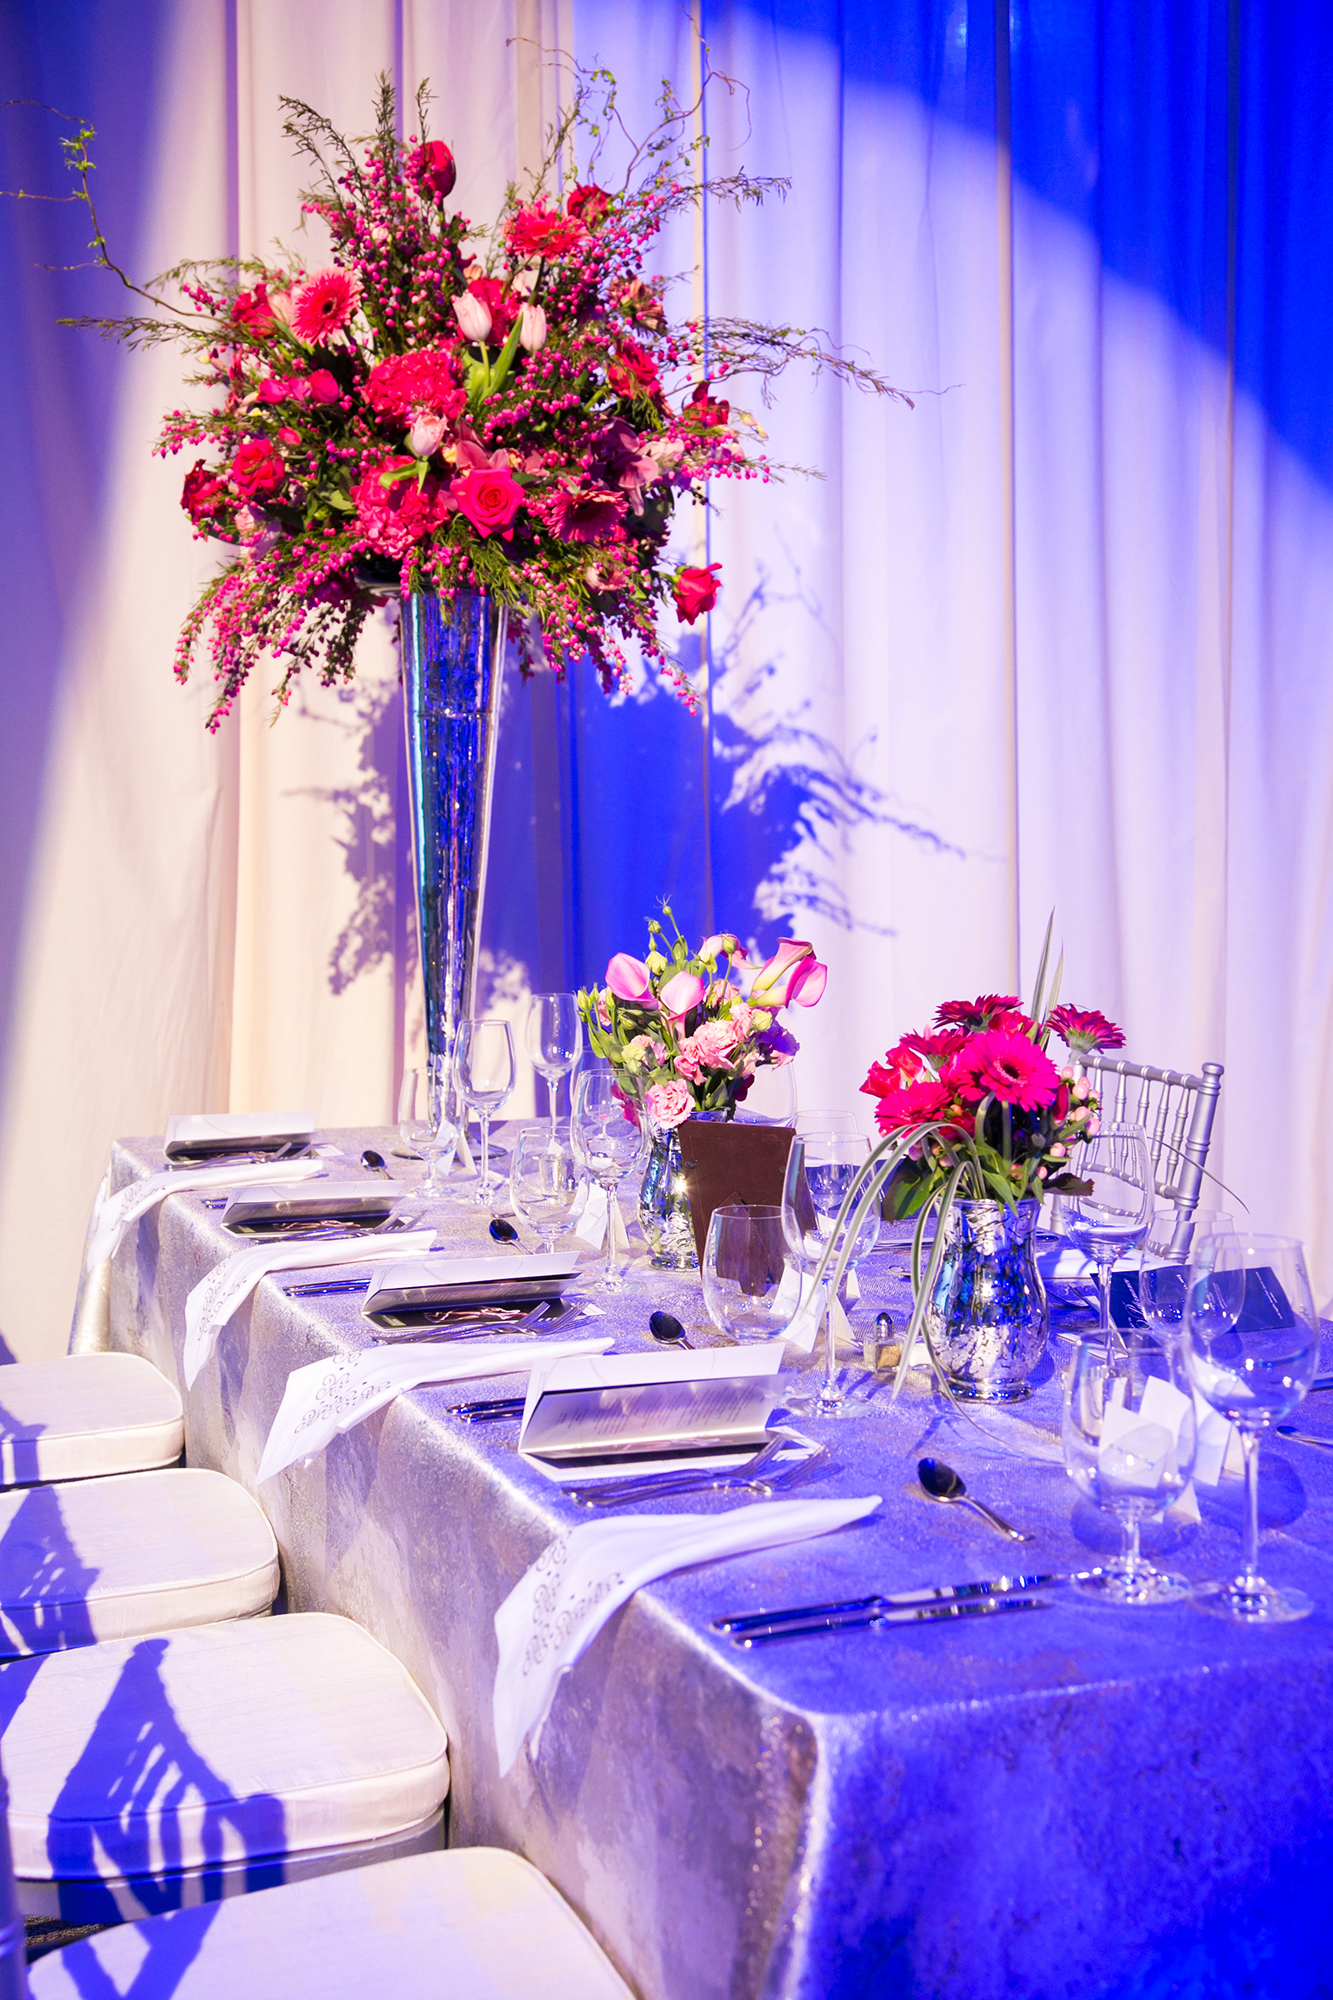 06_Celebrity Series Non Profit Gala Table Flower Details_AE Events.jpg